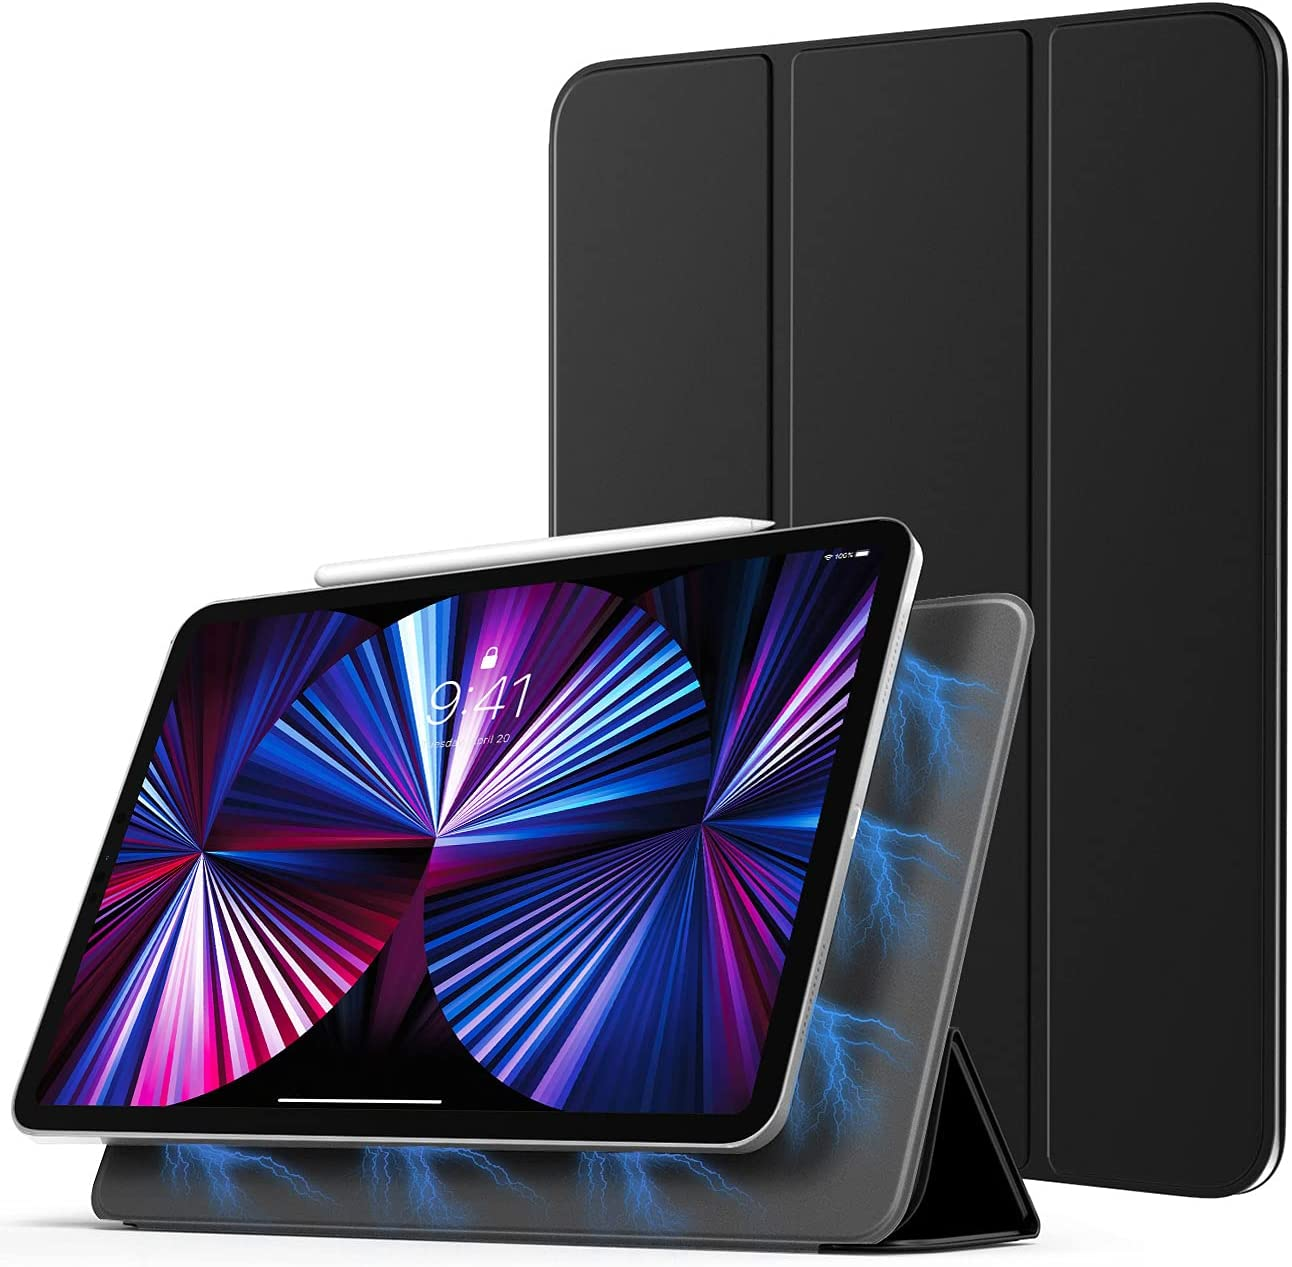 TiMOVO Case for New iPad Pro 11 inch 2021 (3rd Gen), [Support 2nd Gen APPLE Pencil Charging] Strong Magnetic Trifold Stand Case & Auto Wake/Sleep fit iPad Pro 11